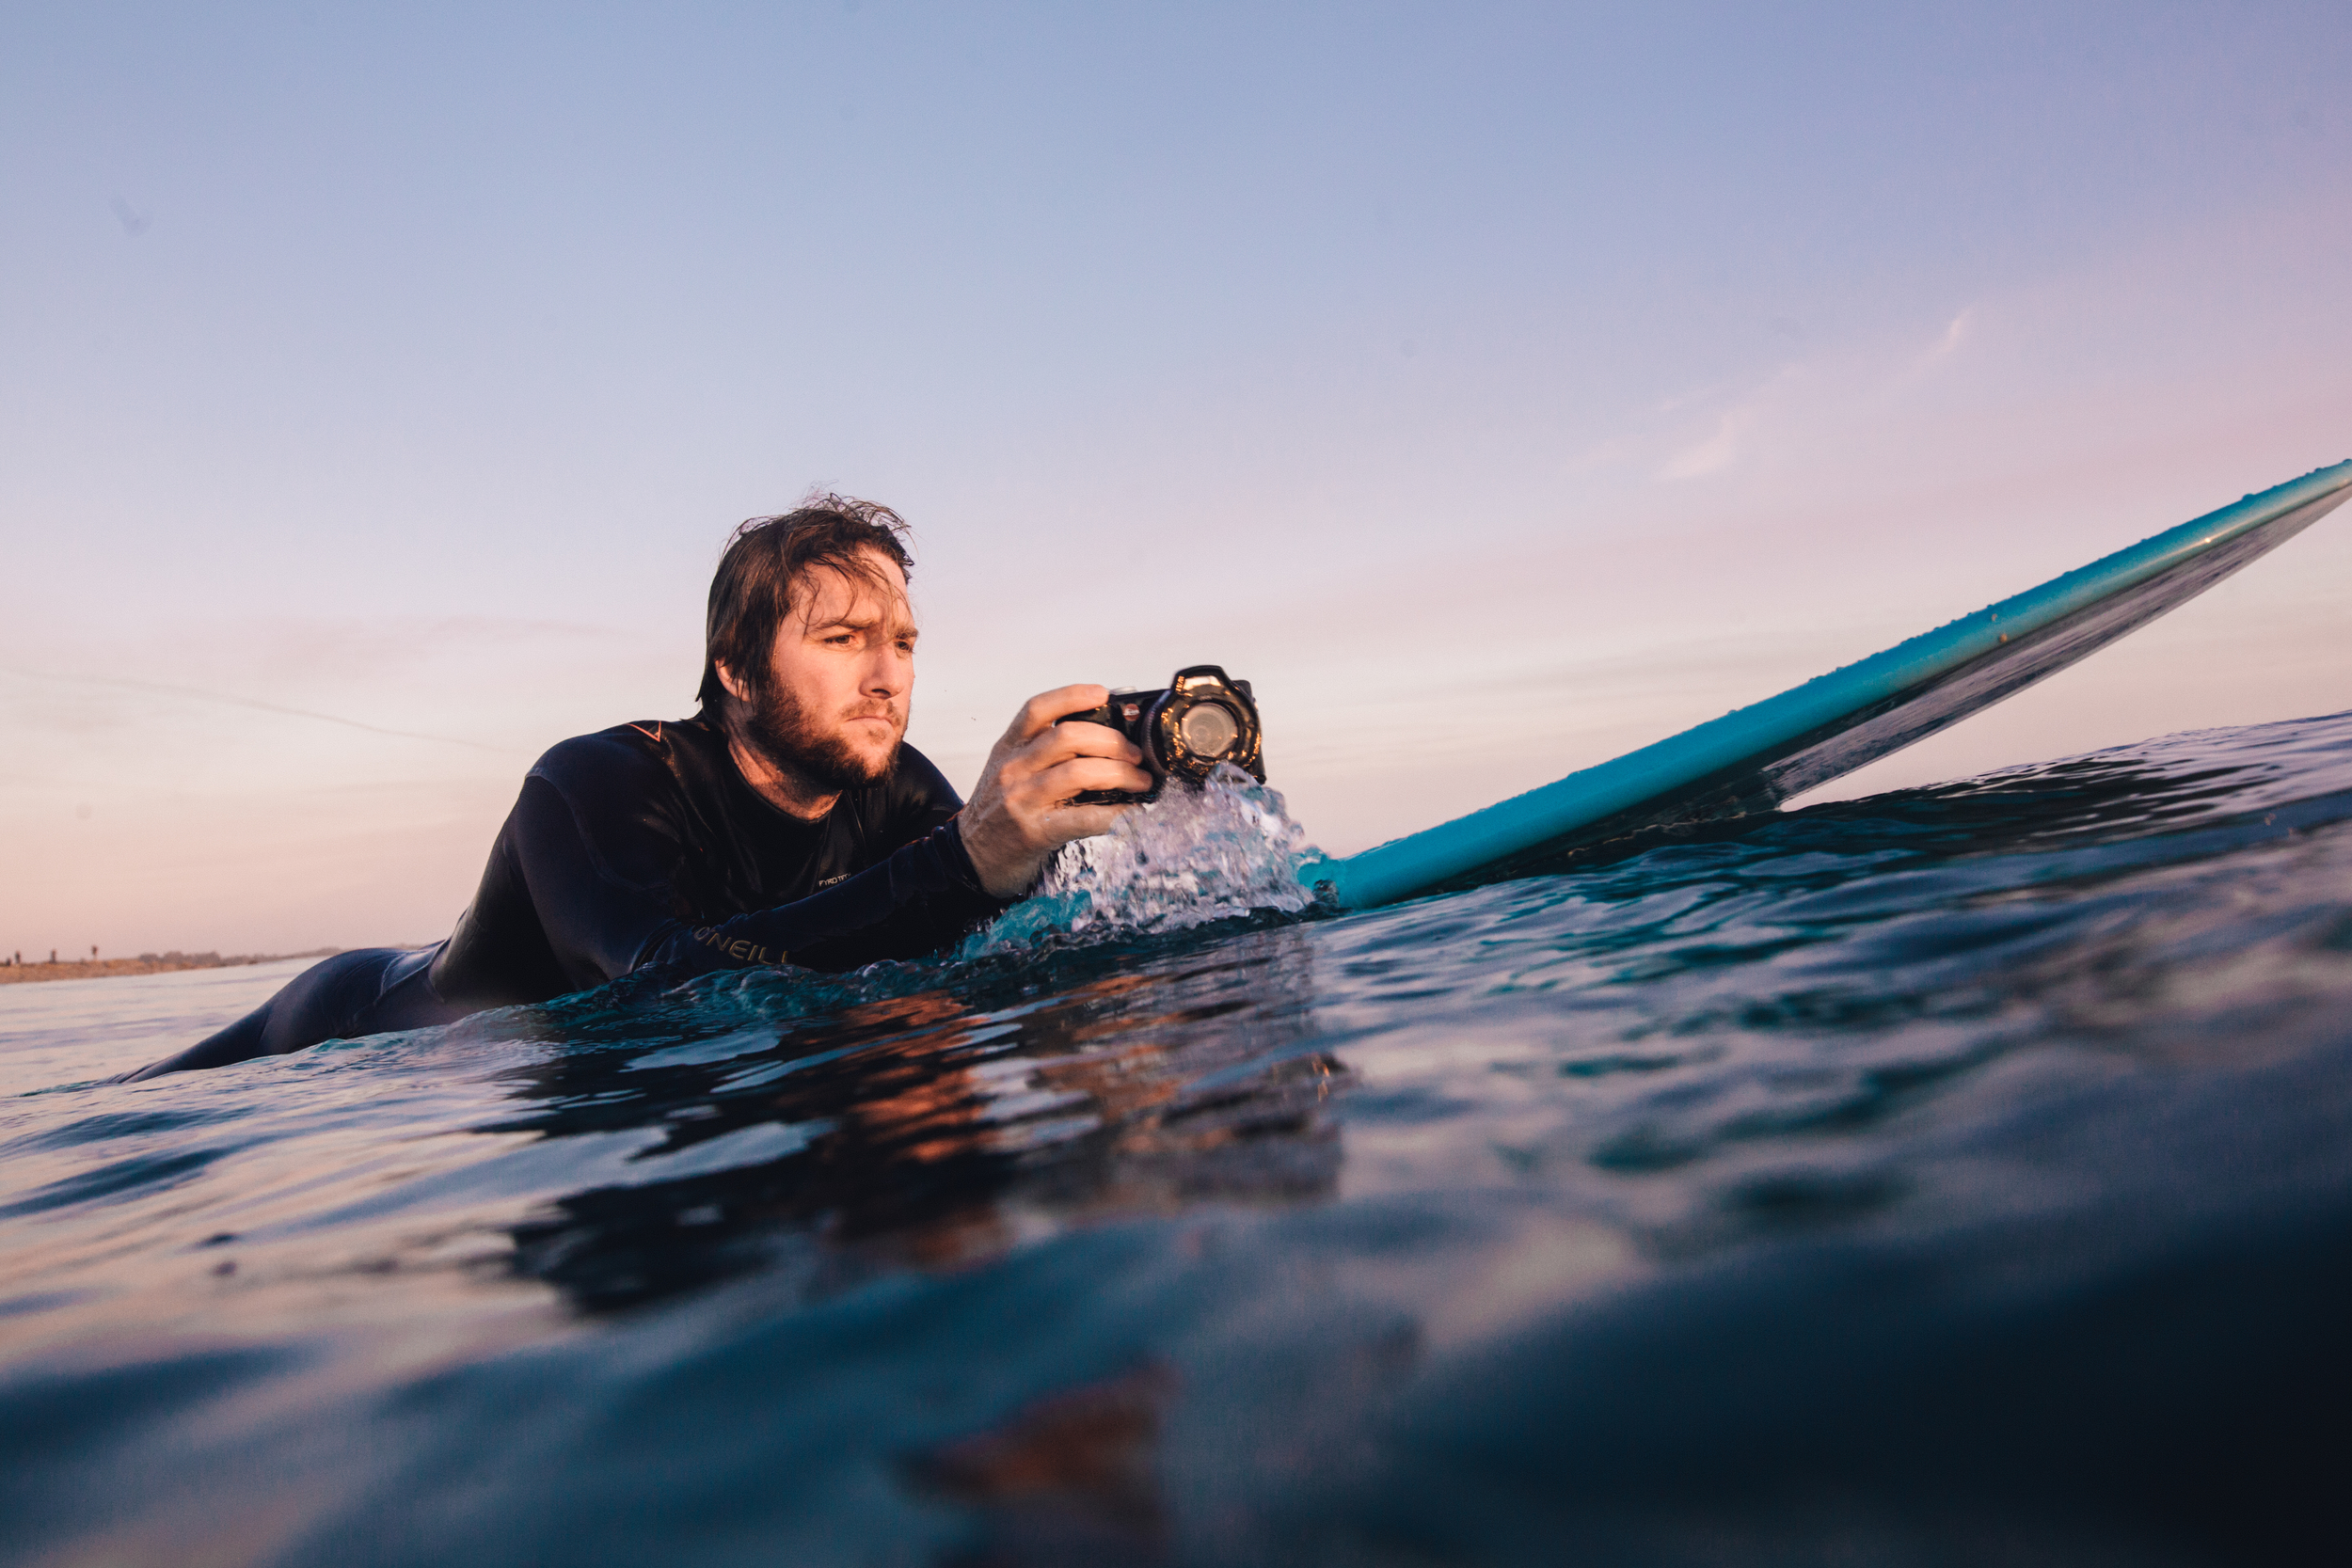 Taking the new Leica X-U for a surf/shoot. Photo by: Peter Armend